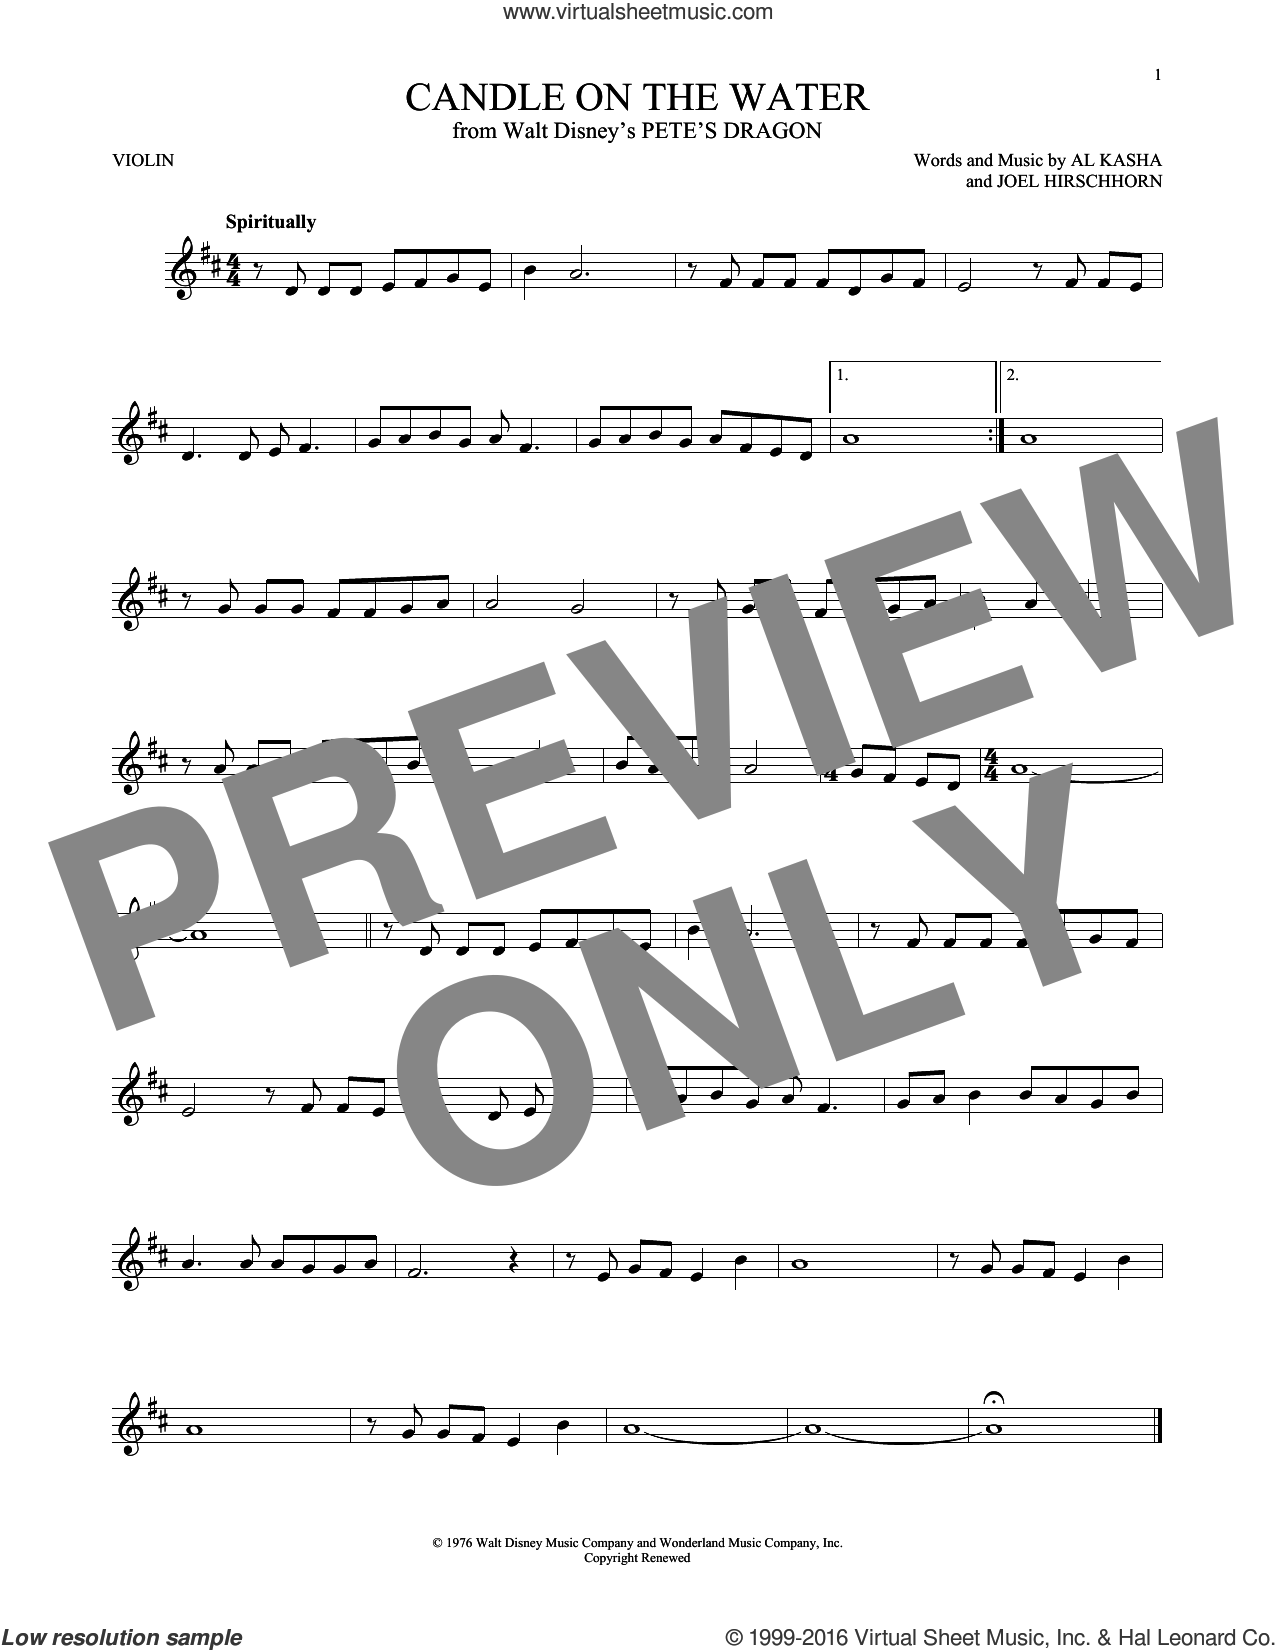 Candle On The Water sheet music for violin solo by Al Kasha, Al Kasha & Joel Hirschhorn and Joel Hirschhorn, intermediate skill level